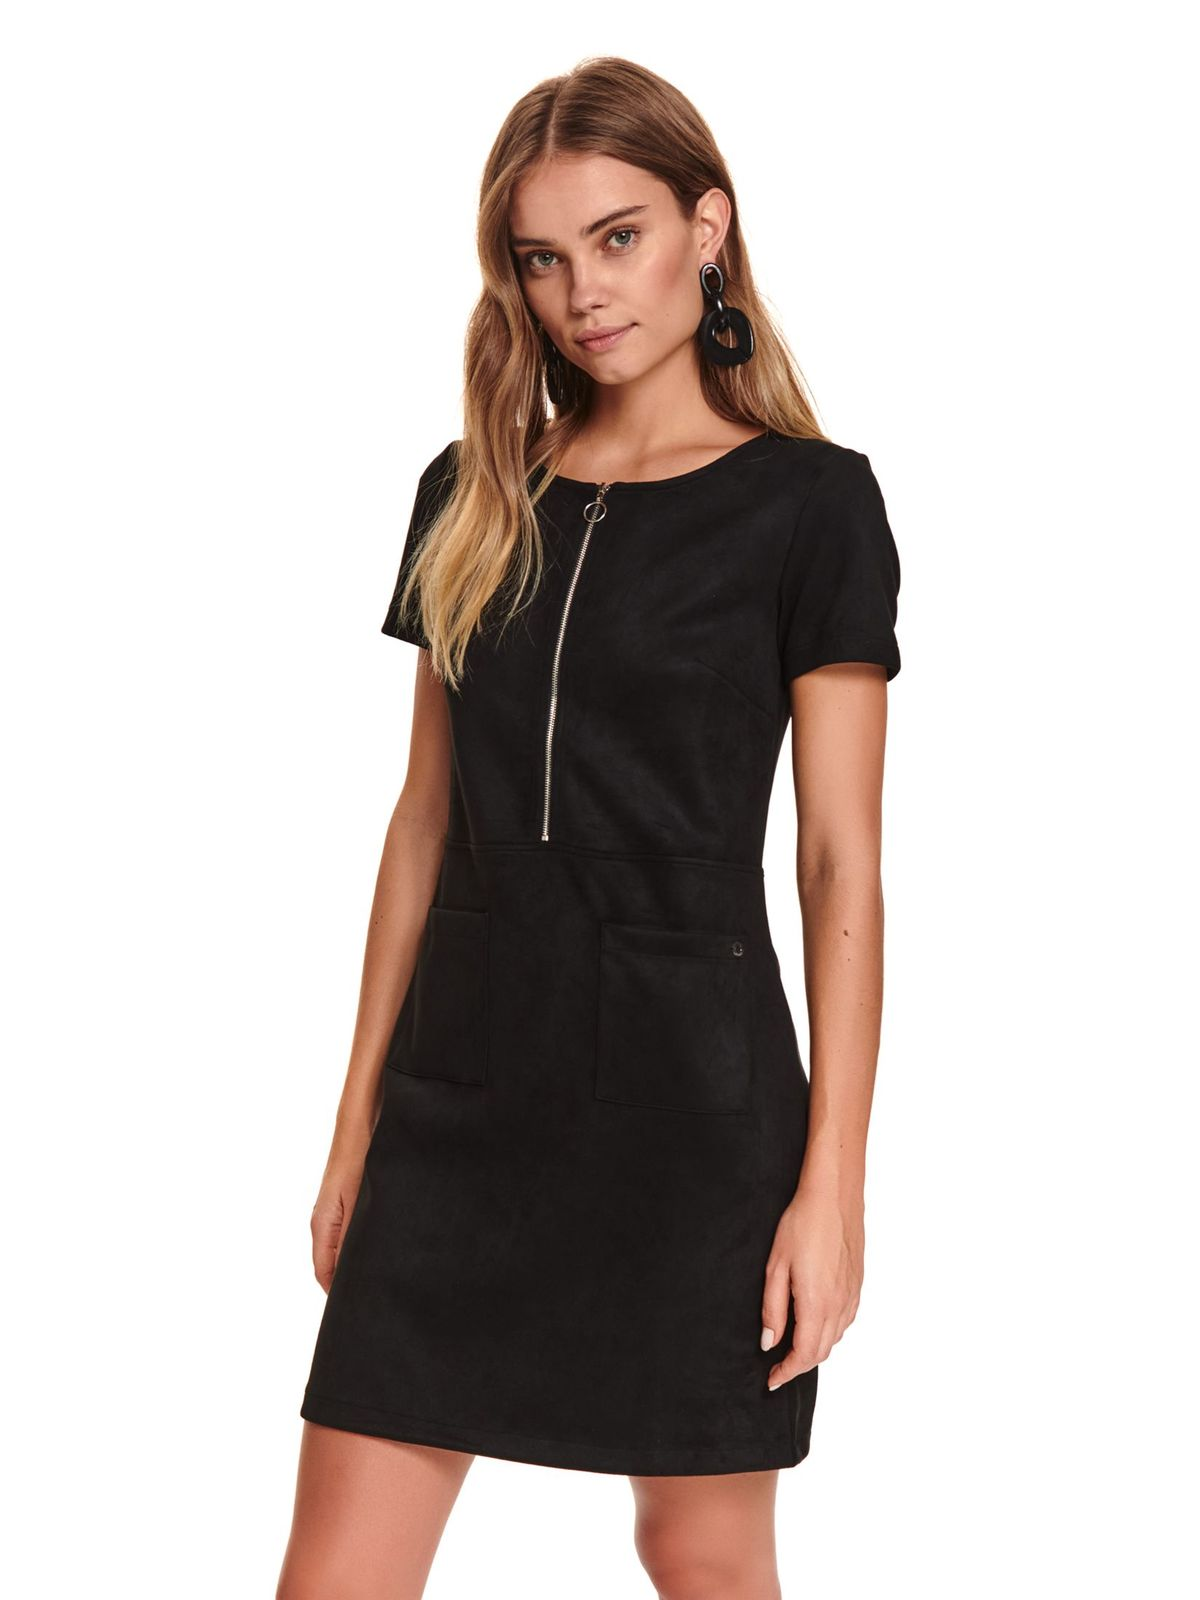 Black dress with pockets from elastic fabric zipper accessory straight